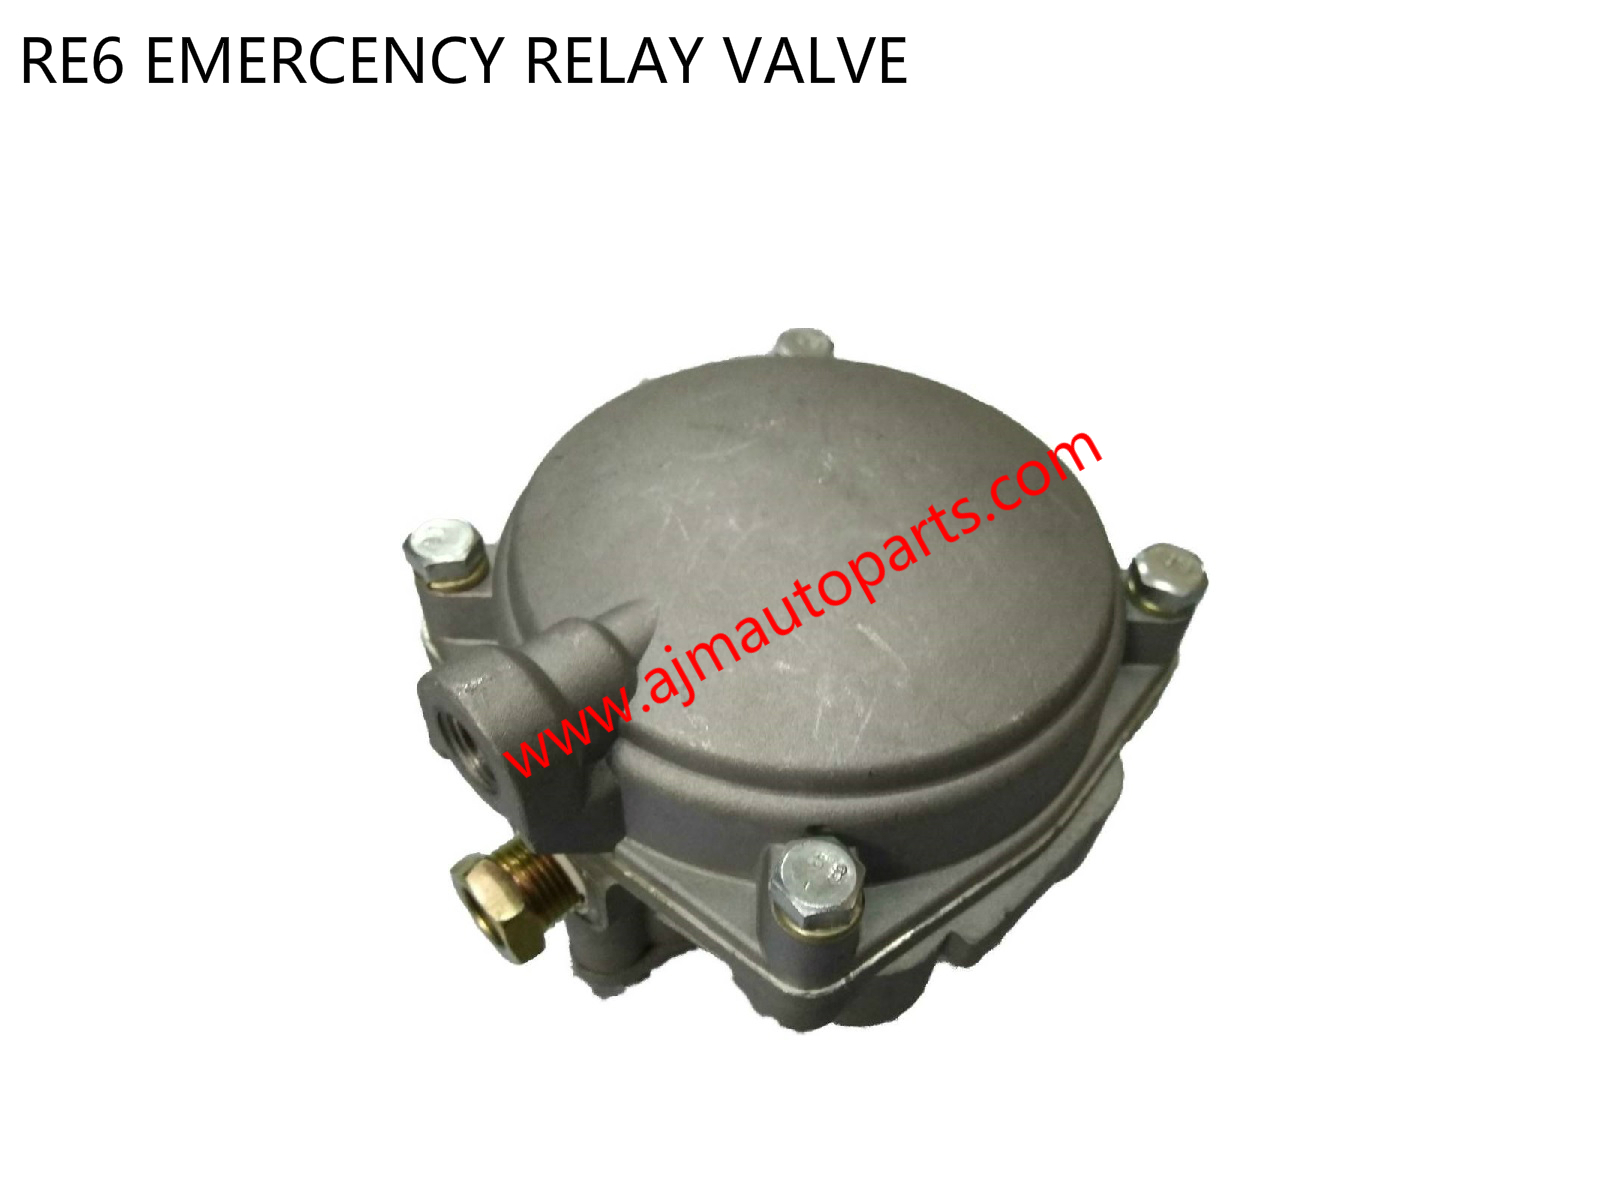 TRAILER RE6 RELAY VALVE-3.8hole